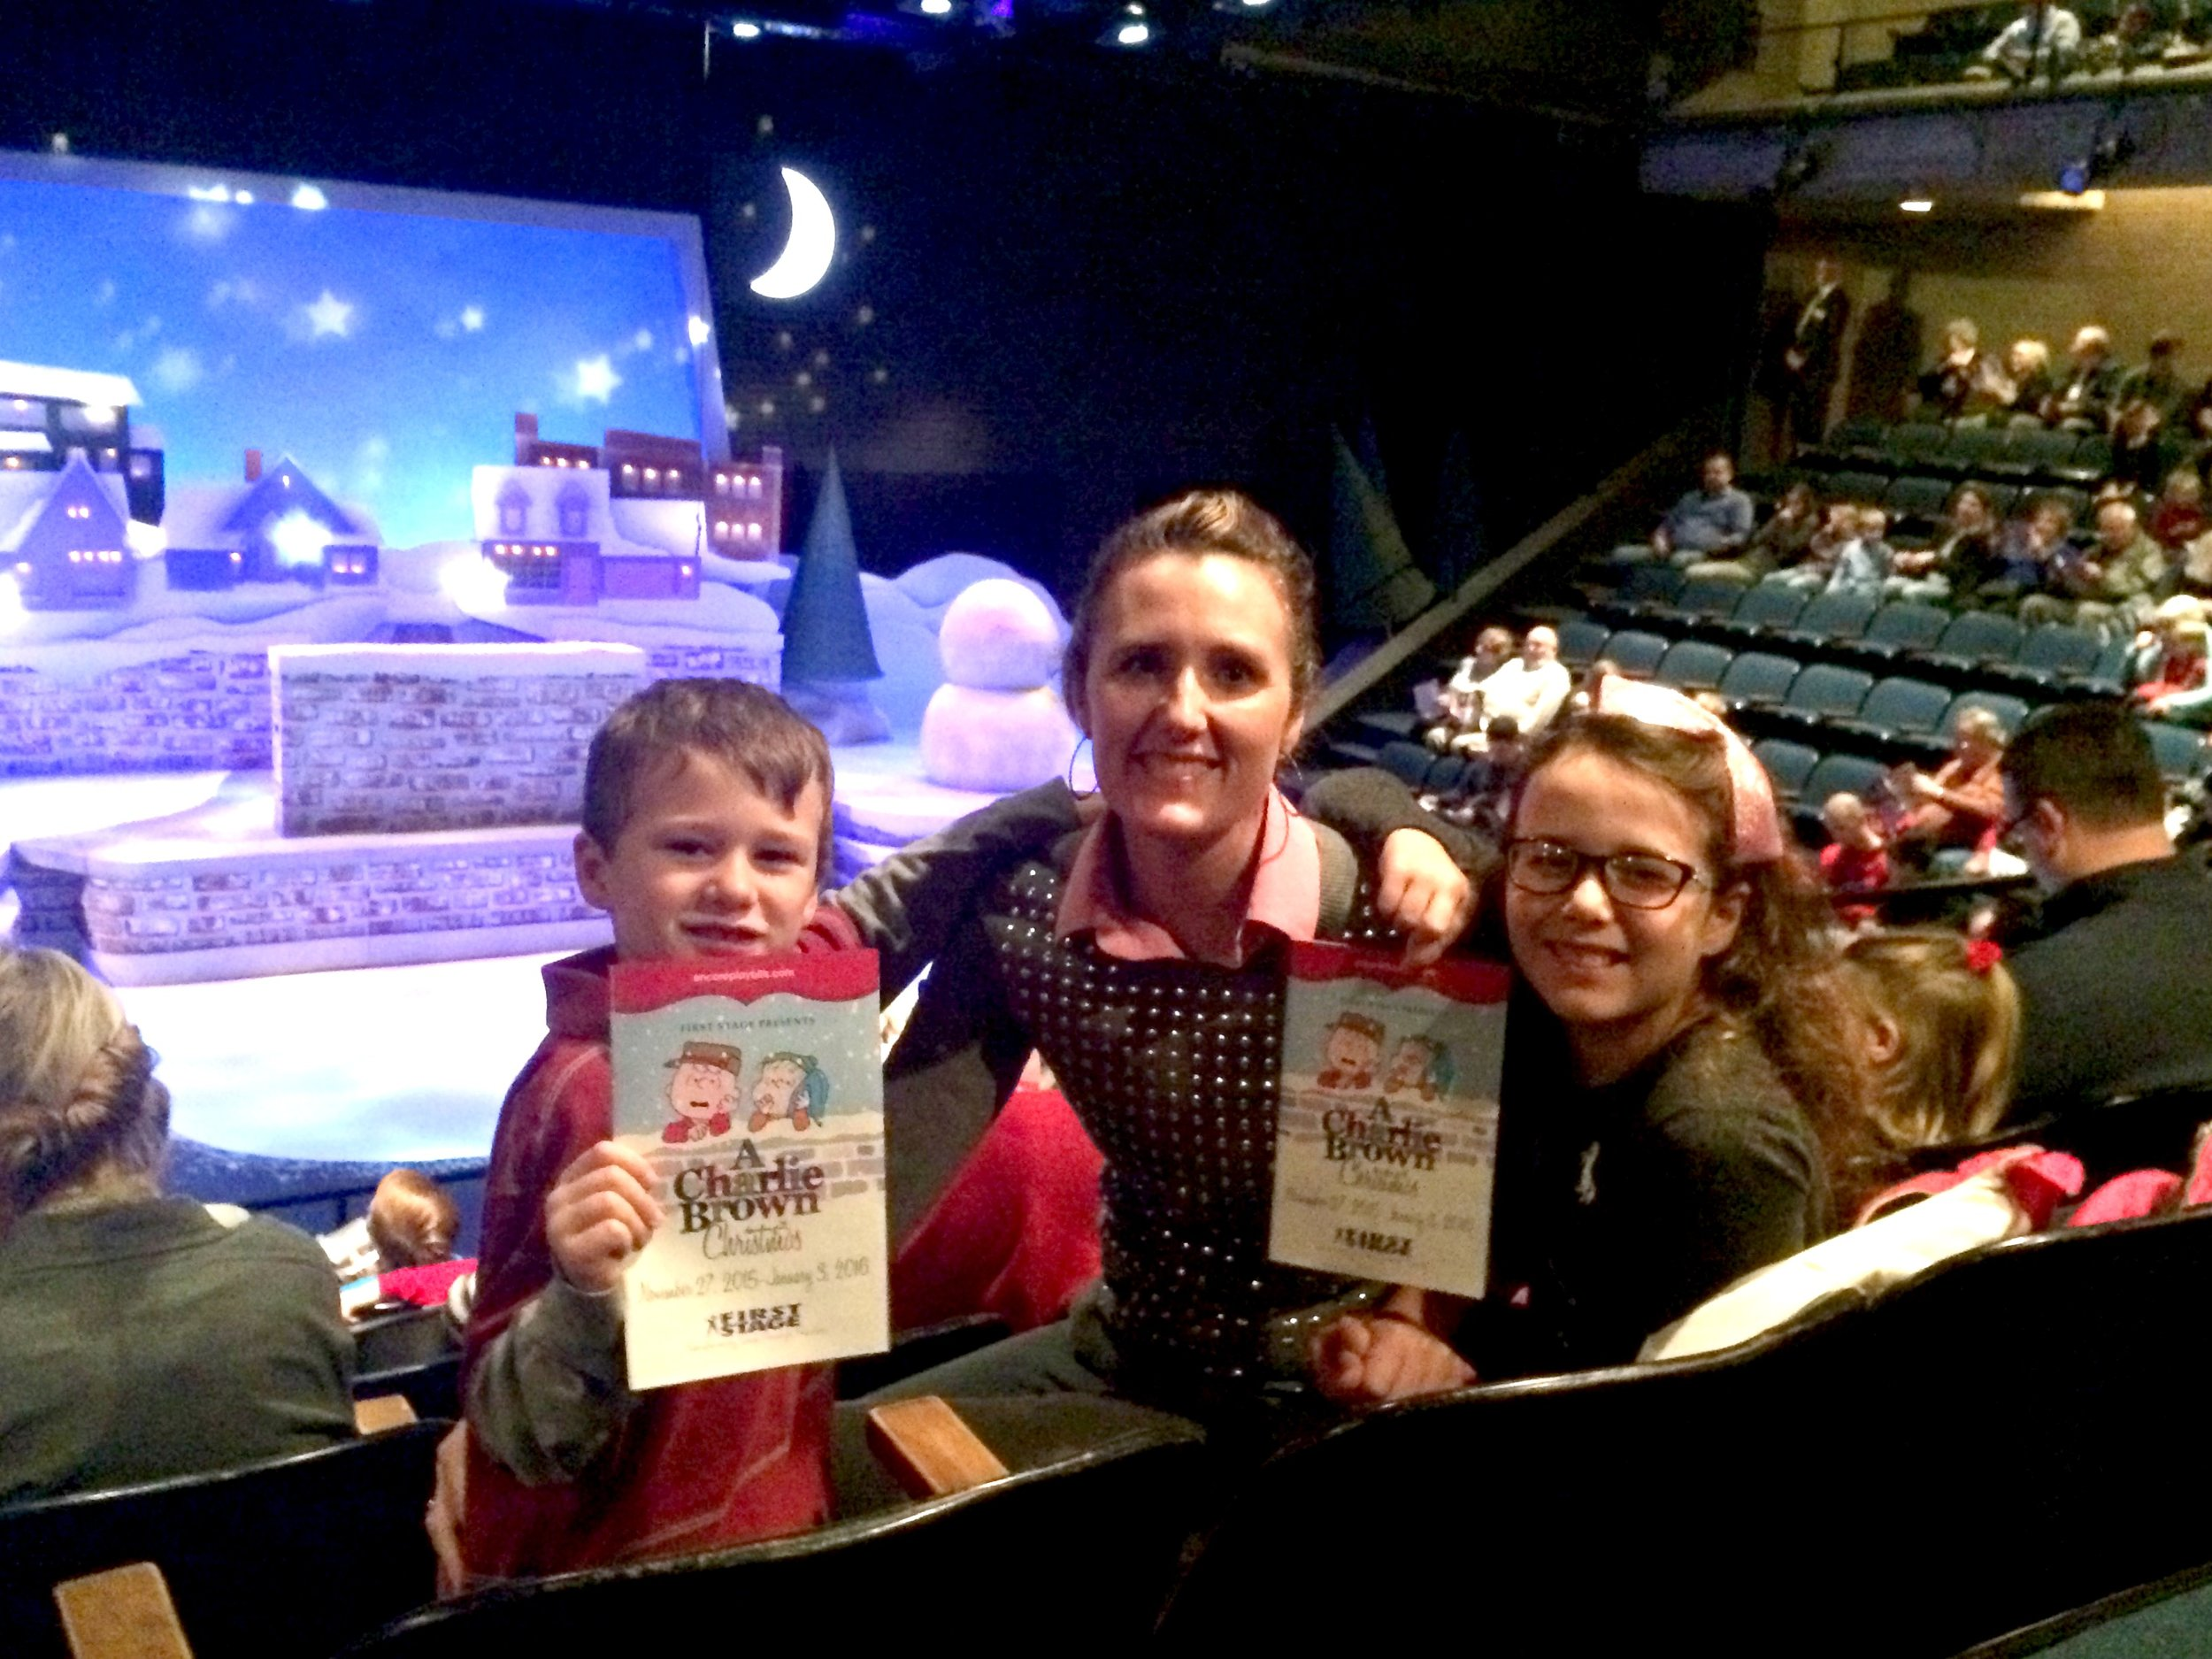 Taking in a local holiday show at  First Stage Children's Theater .